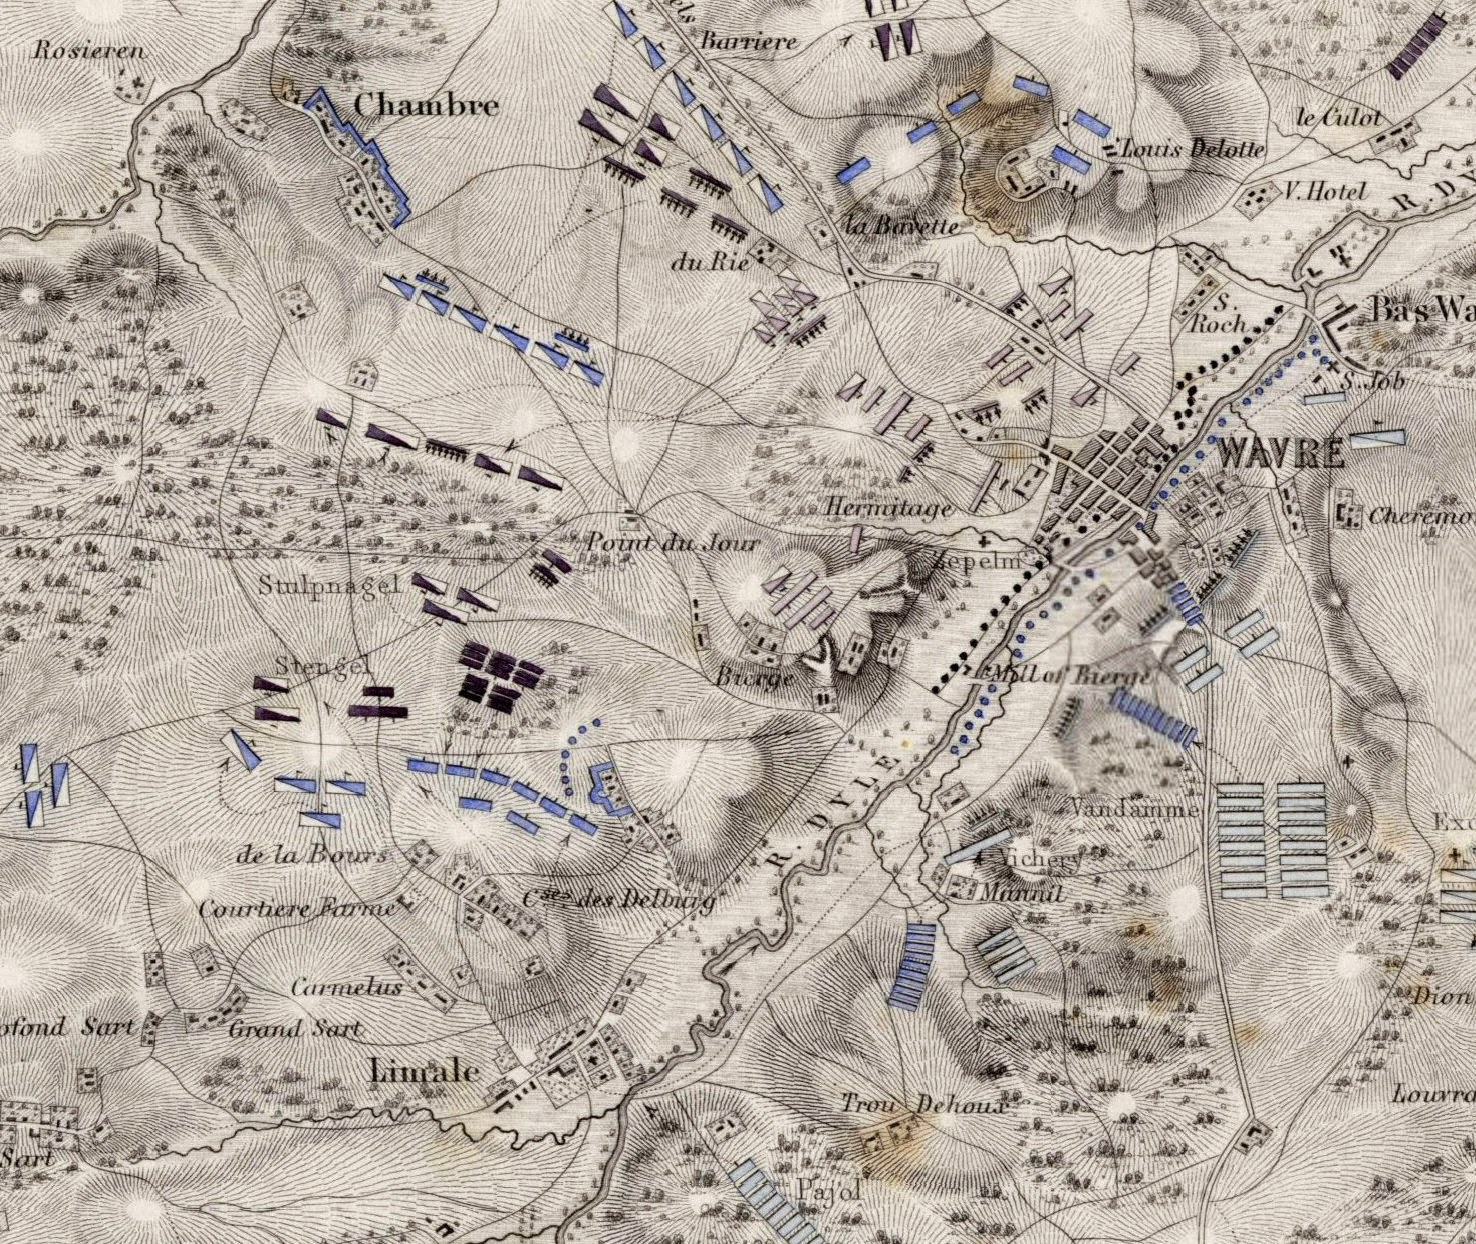 Wavre Battlefied Map designed by Johnston